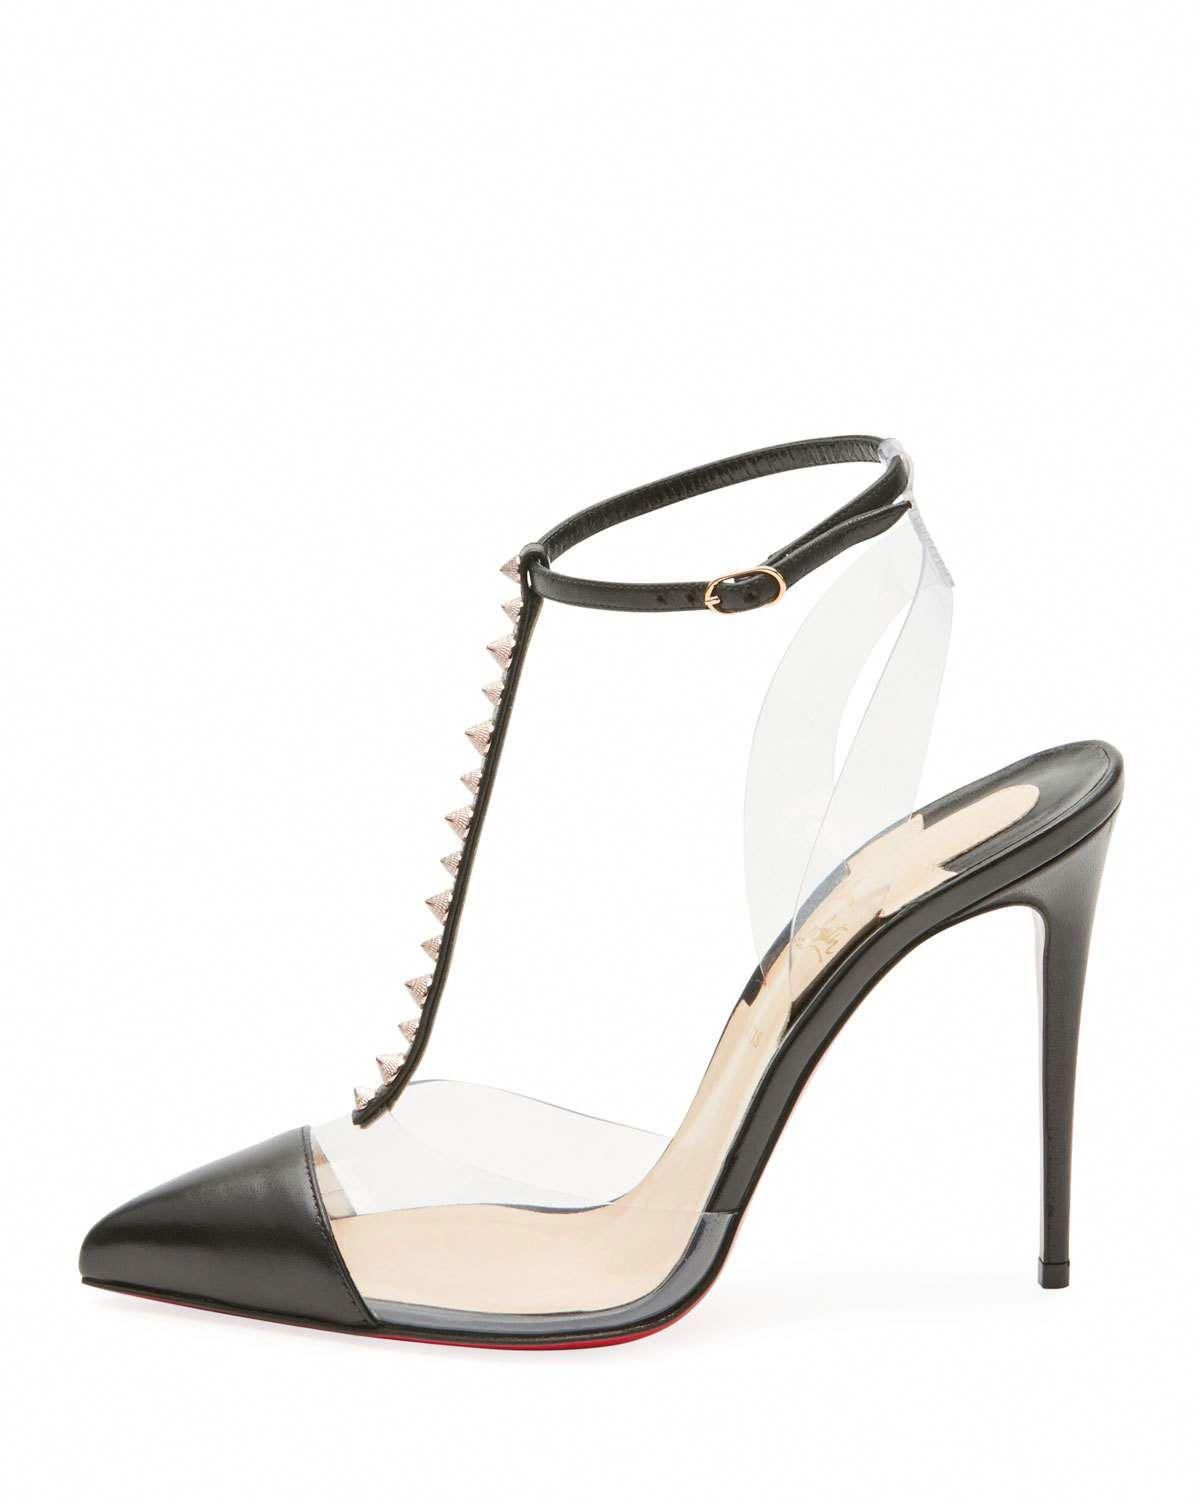 f210197793f2 Christian Louboutin Nosy Spiked T-Strap Red Sole Pump  ChristianLouboutin